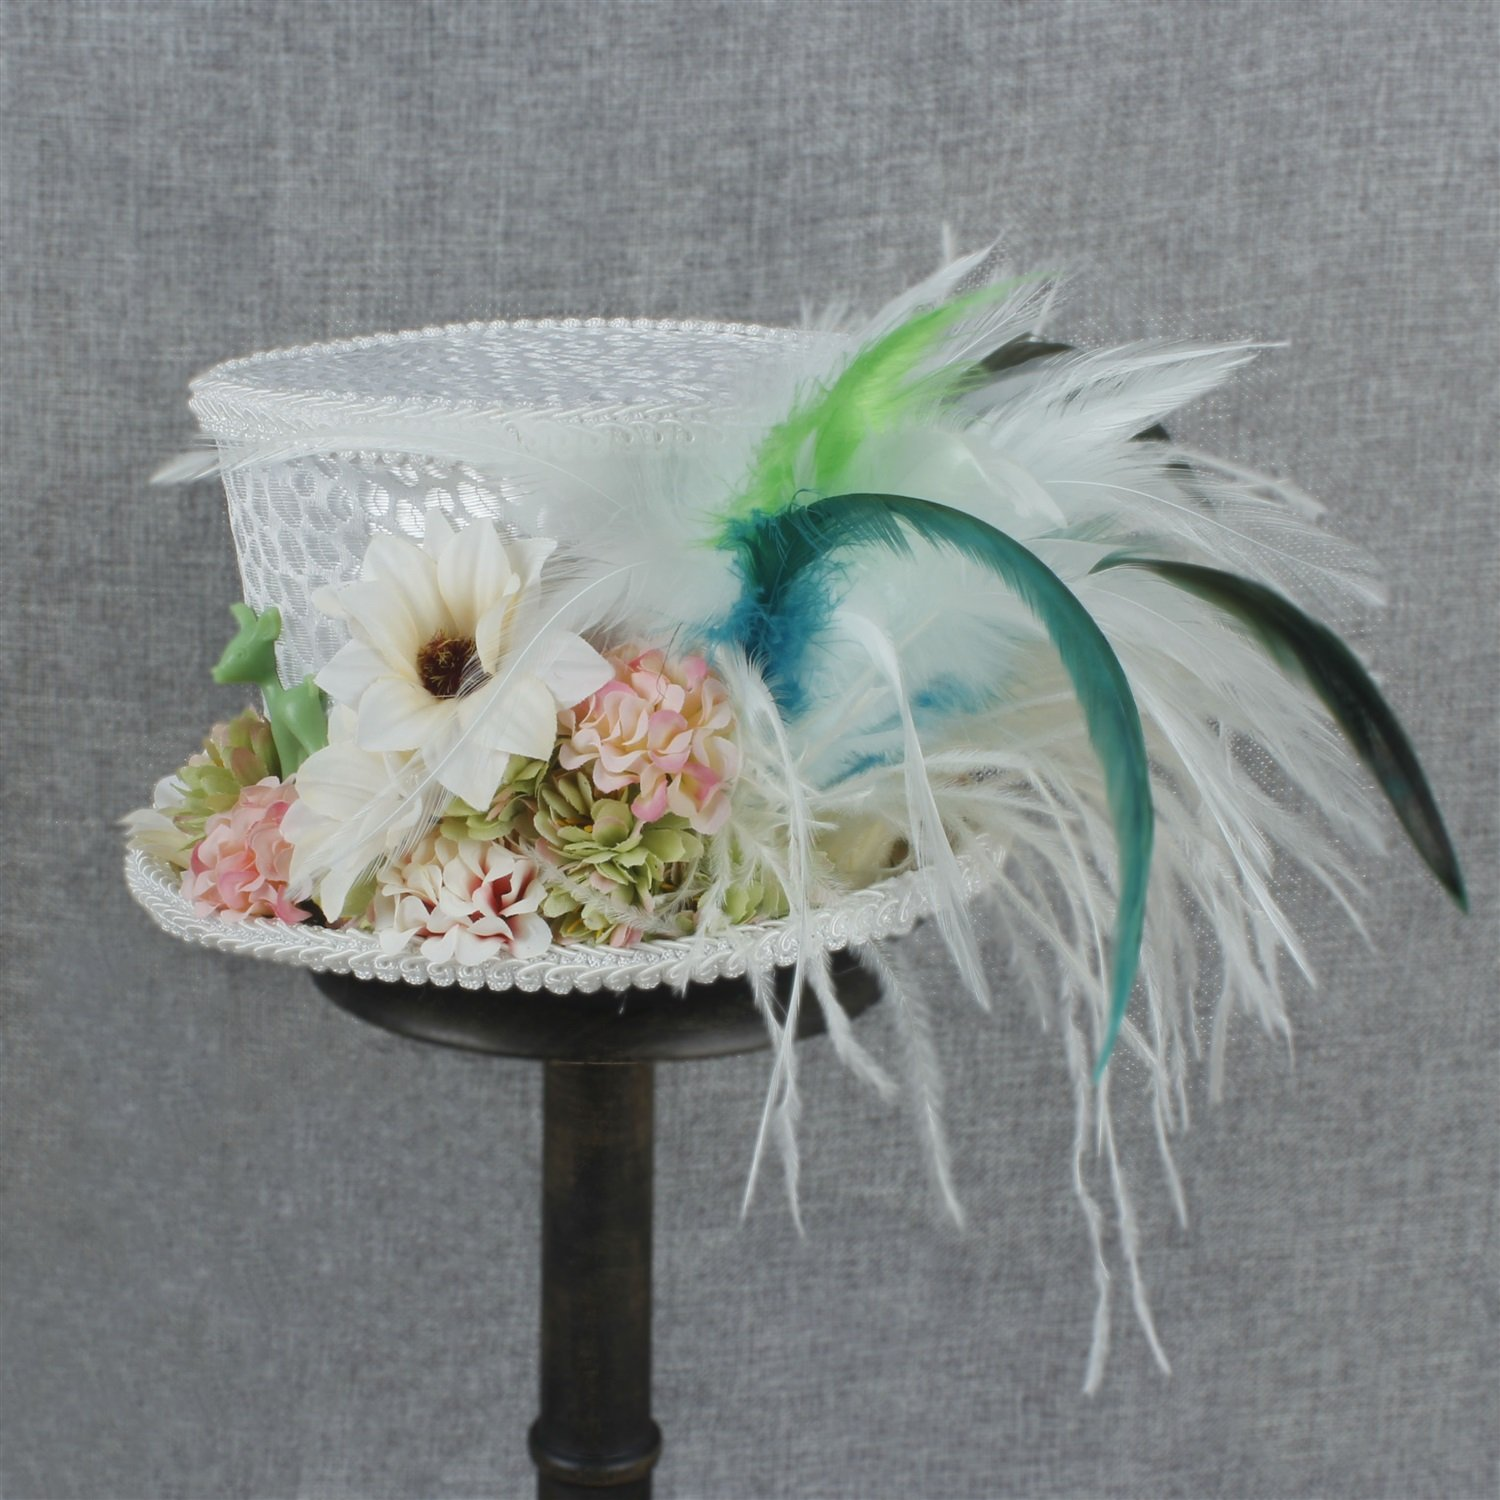 LL Women's White Mini Top Hat Tea Hat Mad Hatter Tea hat, Bridal Hat, Kentucky Derby hat (Color : White, Size : 25-30cm) by LL (Image #7)